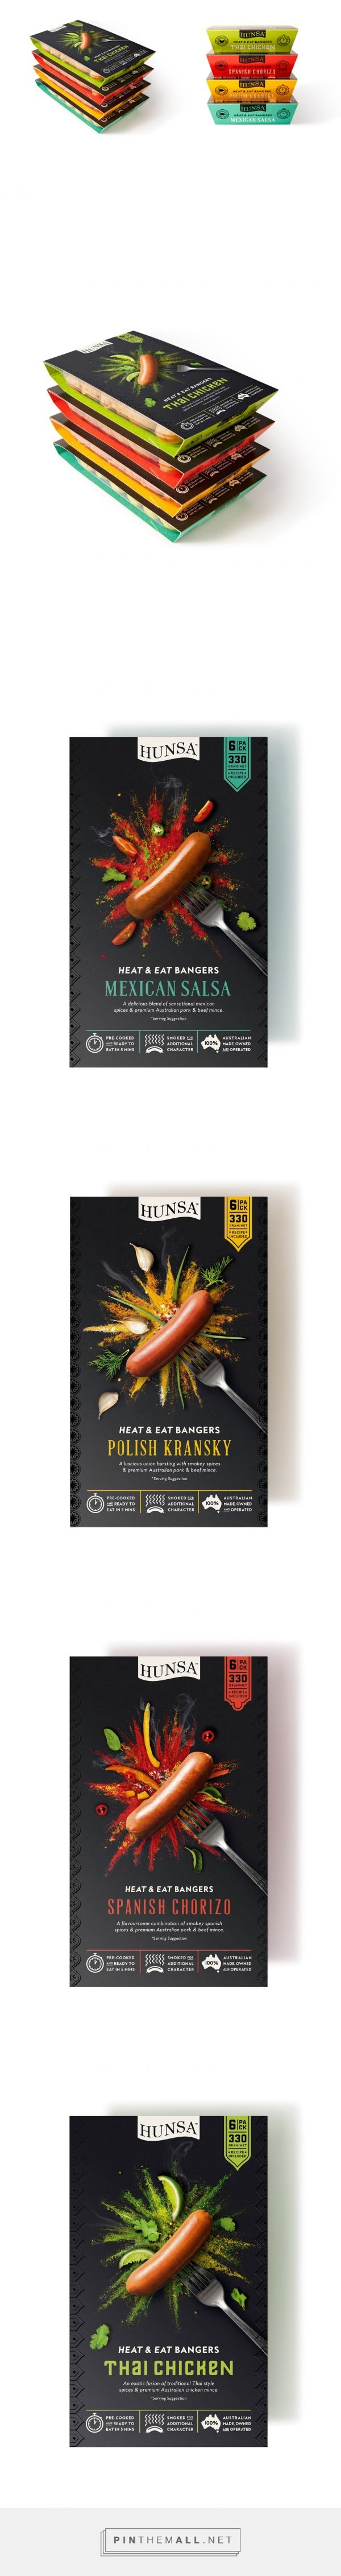 Hunsa Heat & Eat Bangers packaging designed by Dessein - http://www.packagingoftheworld.com/2016/01/hunsa-heat-eat-bangers.html